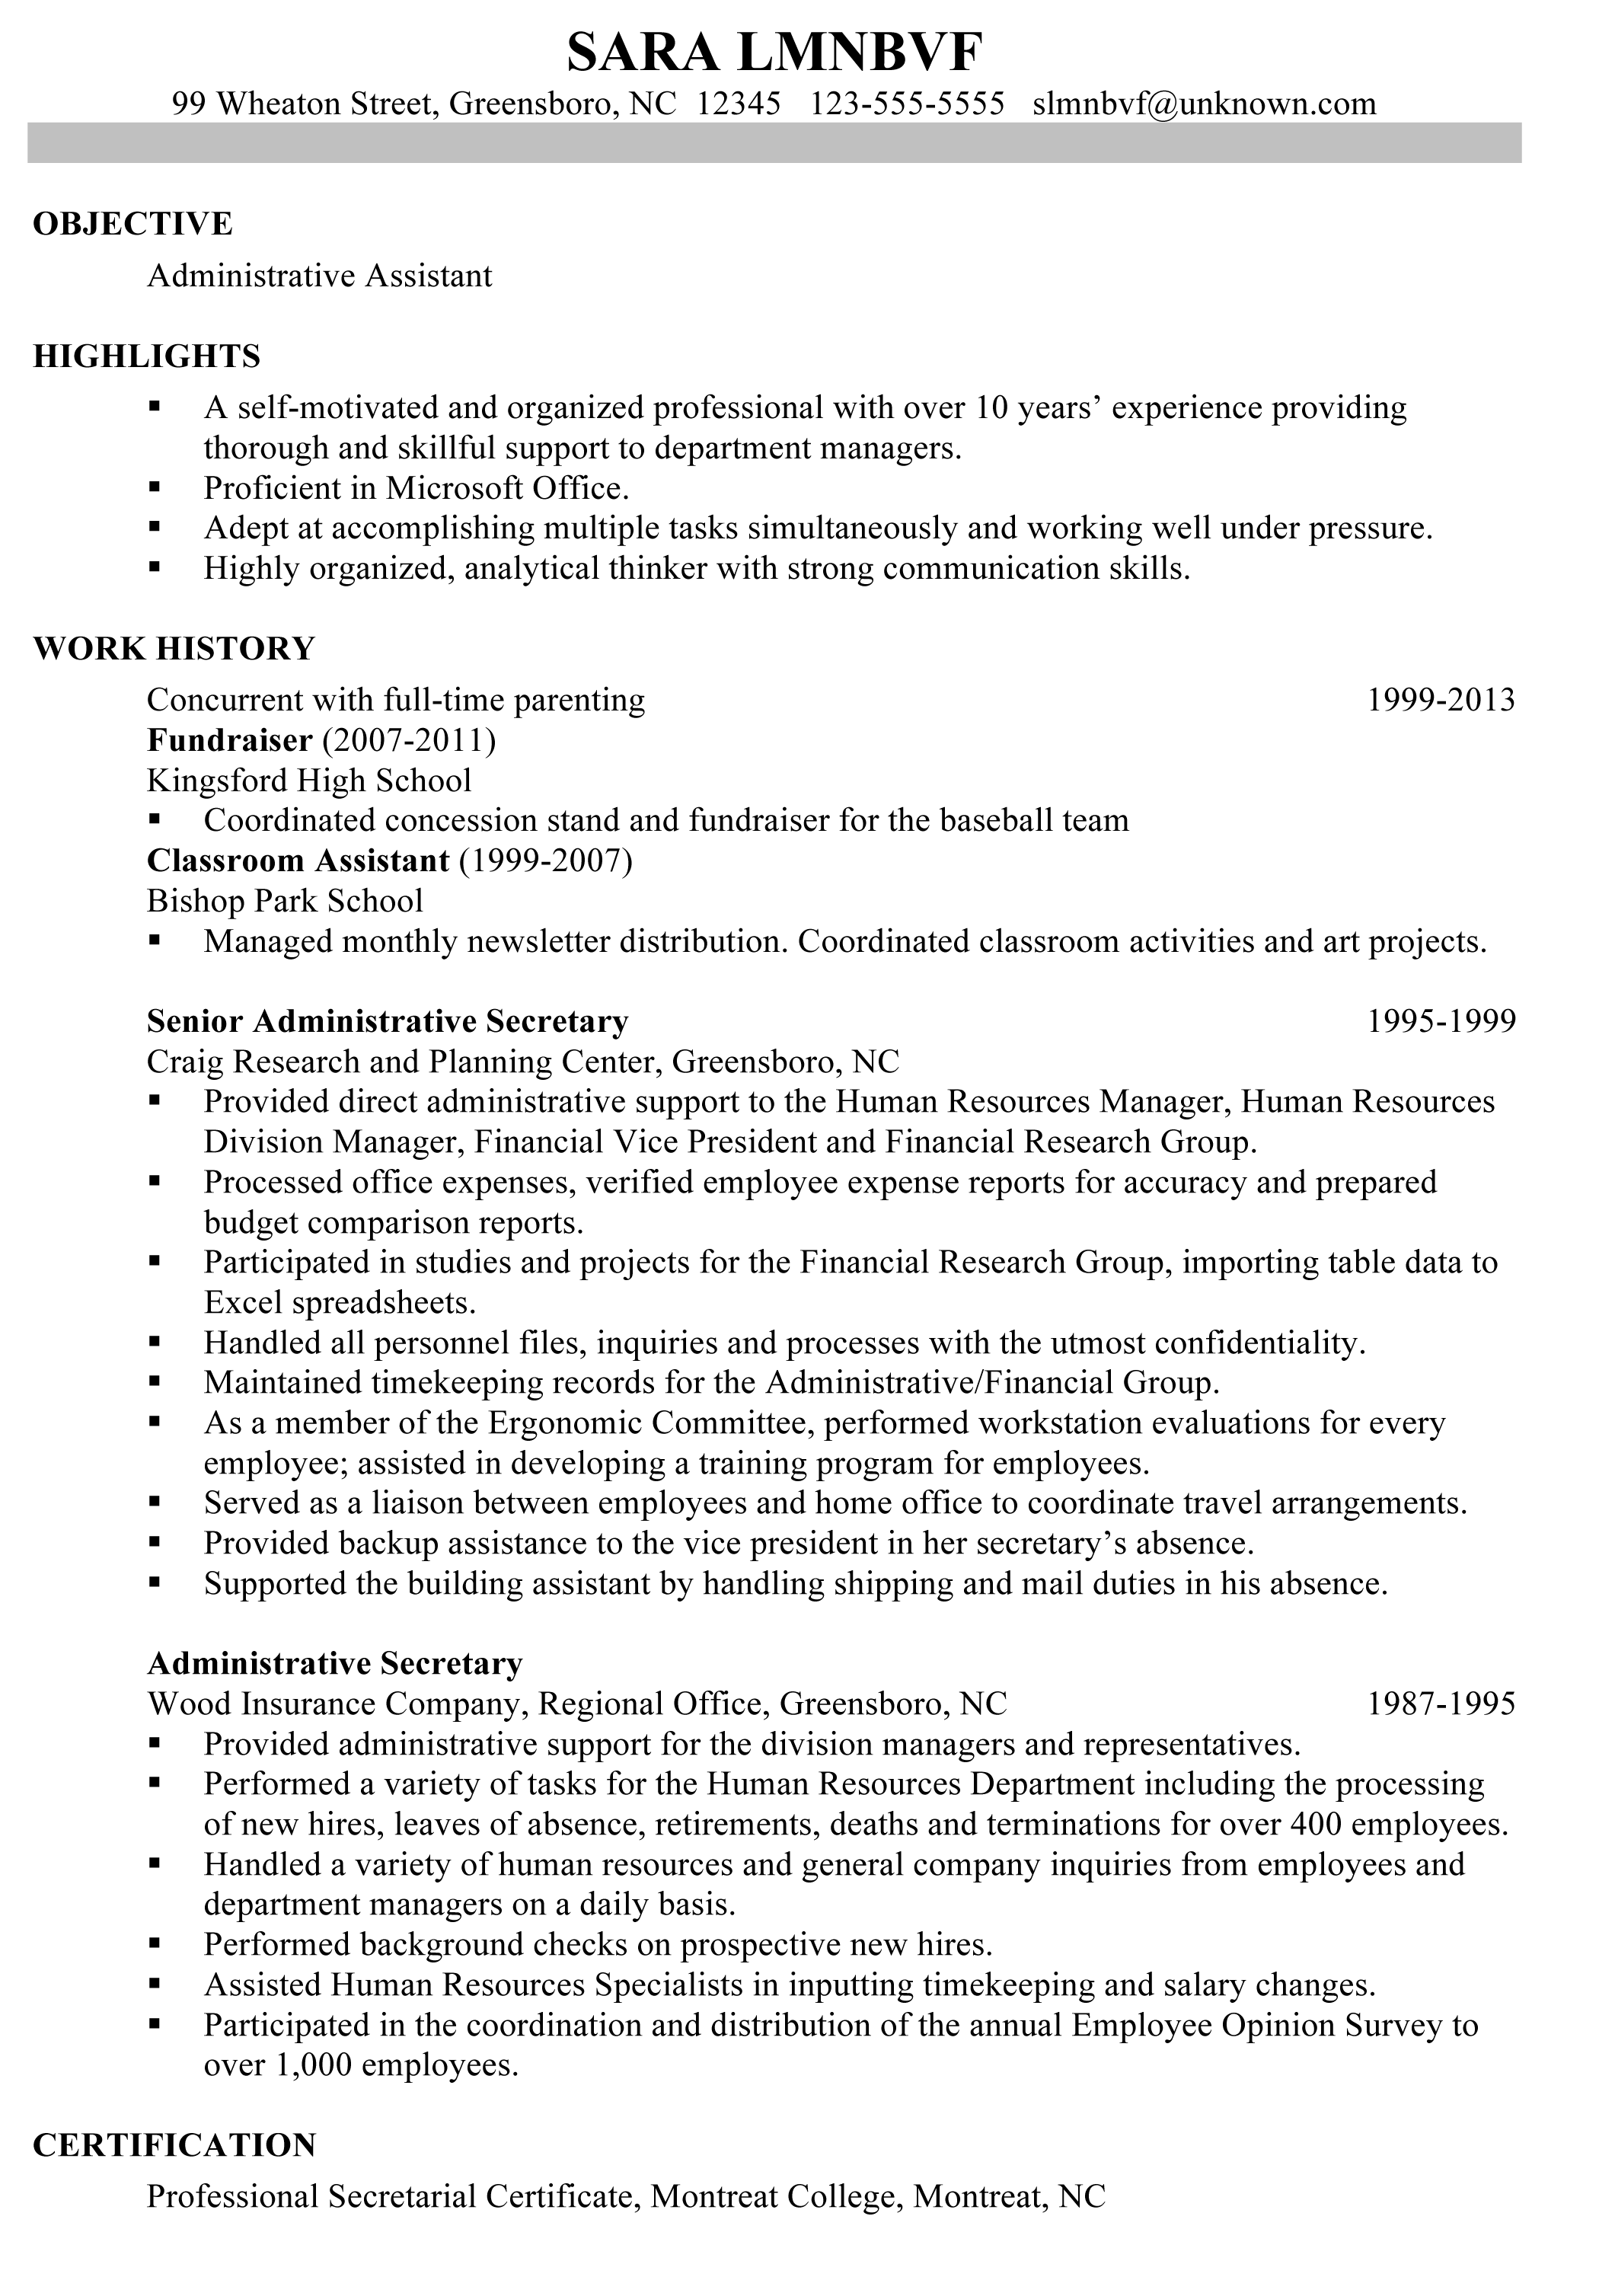 Example Of A Professional Resume Matching Resume Cover Letter Job Reference Page Samples